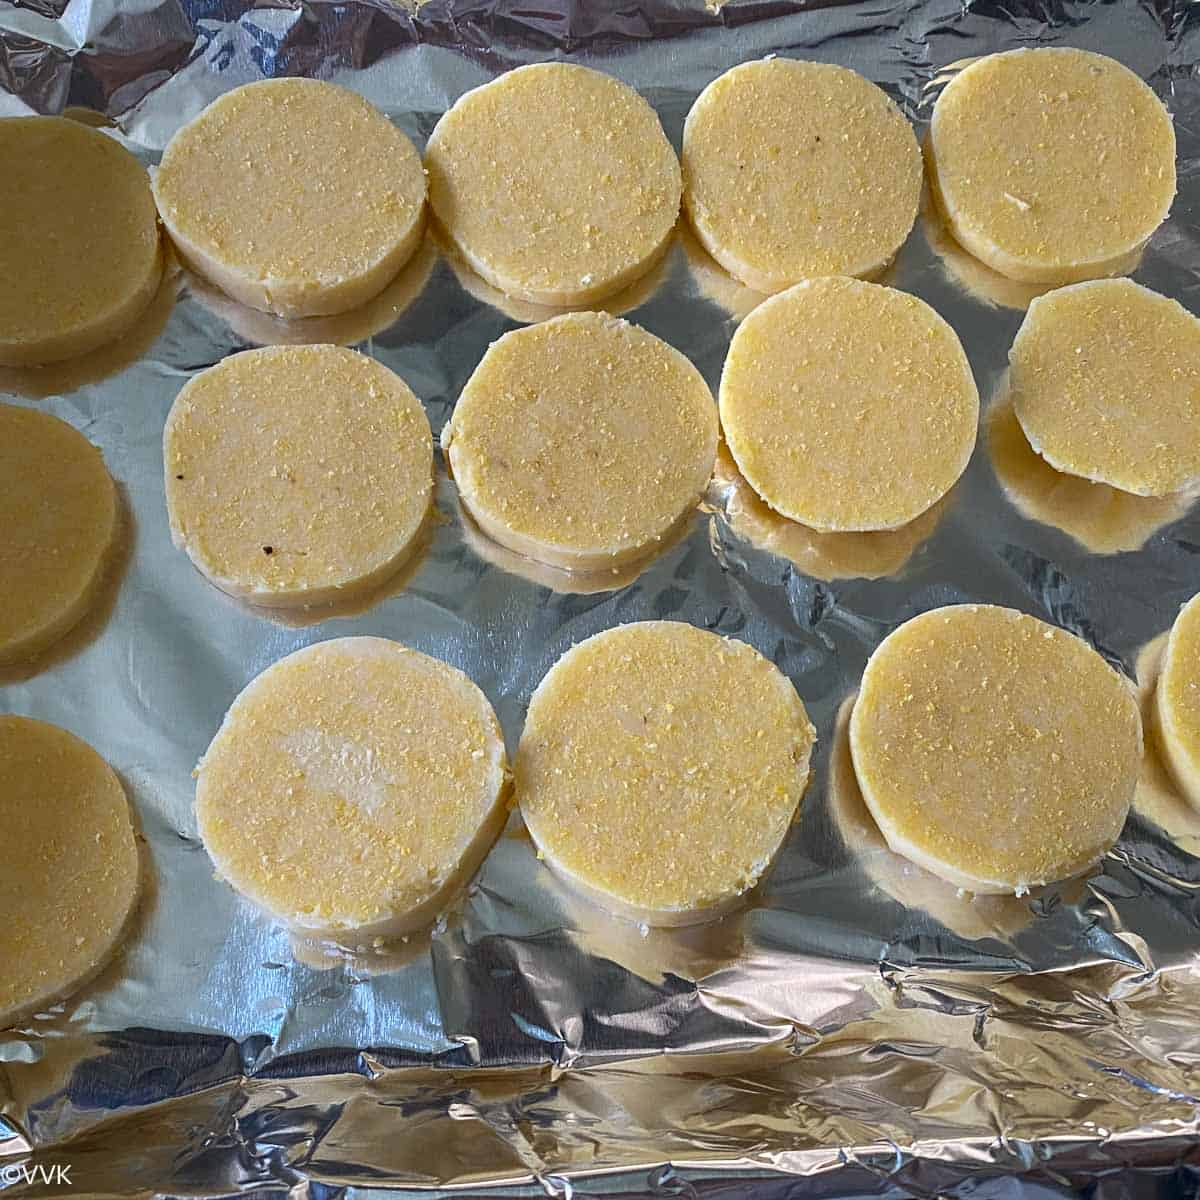 placing the sliced polenta on the baking tray